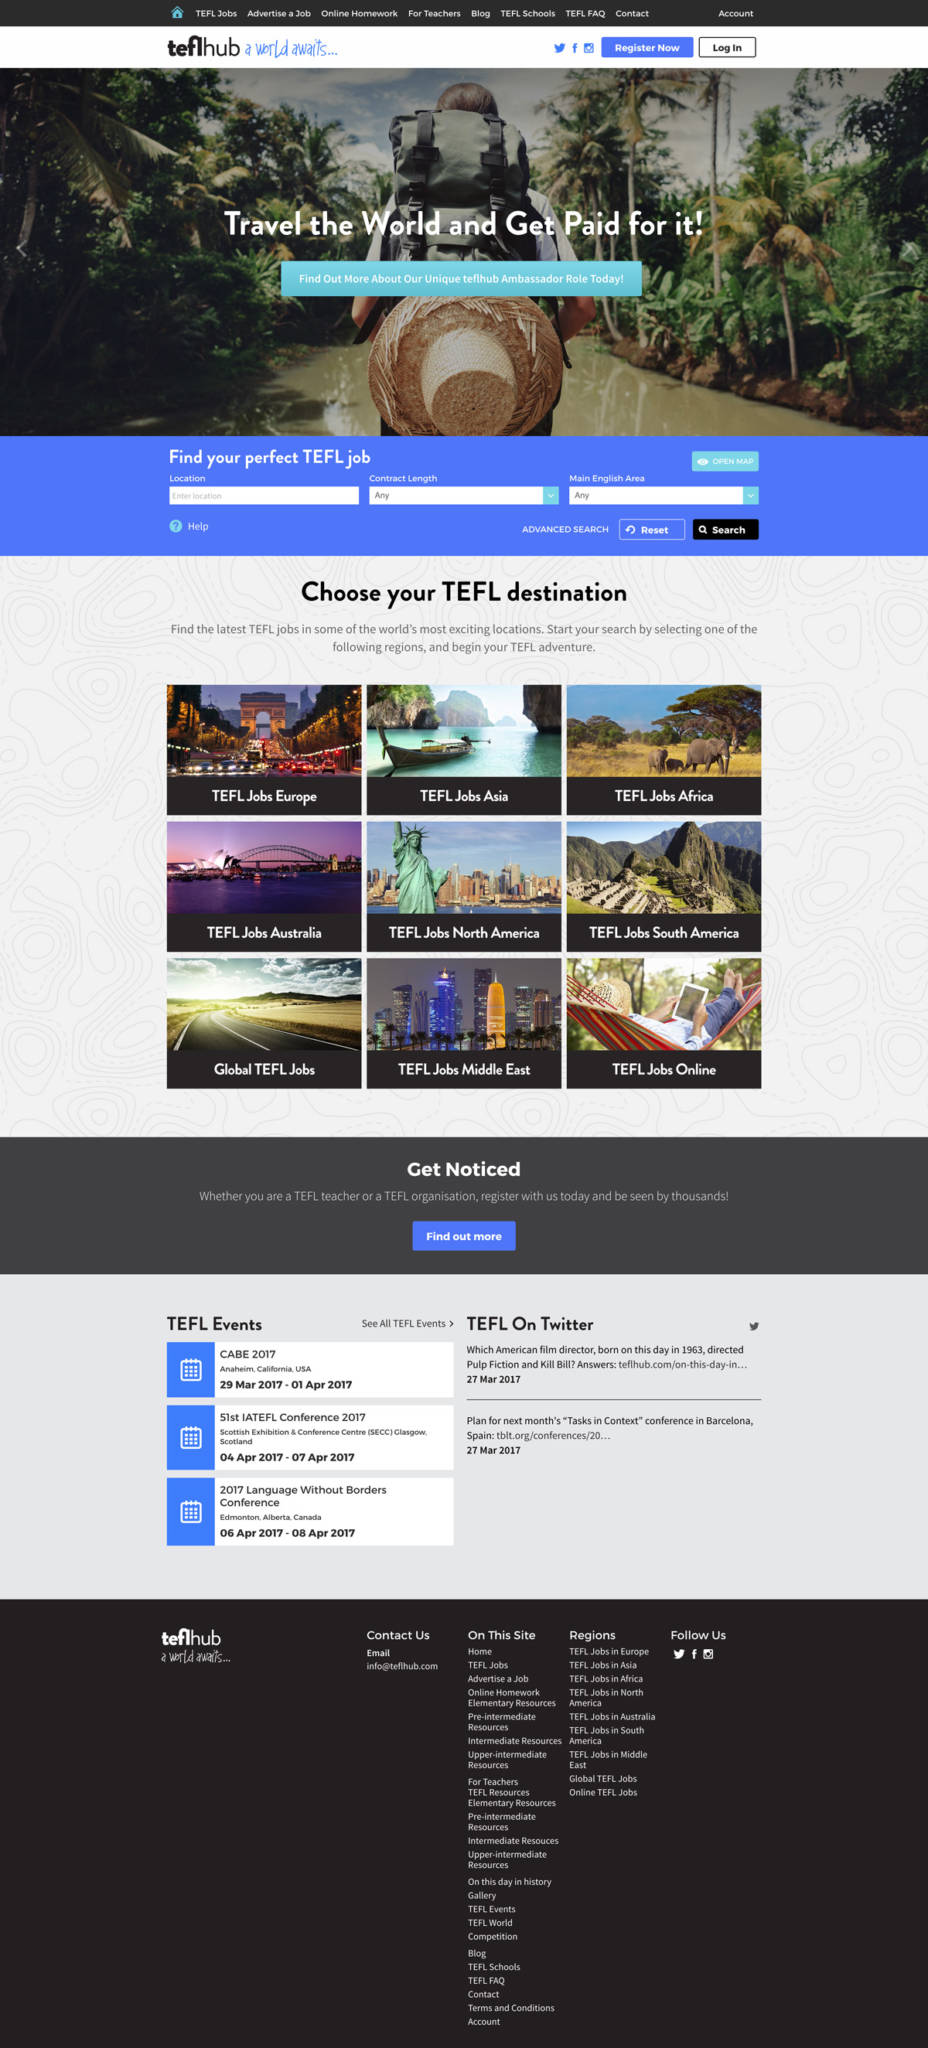 web design teflhub 01